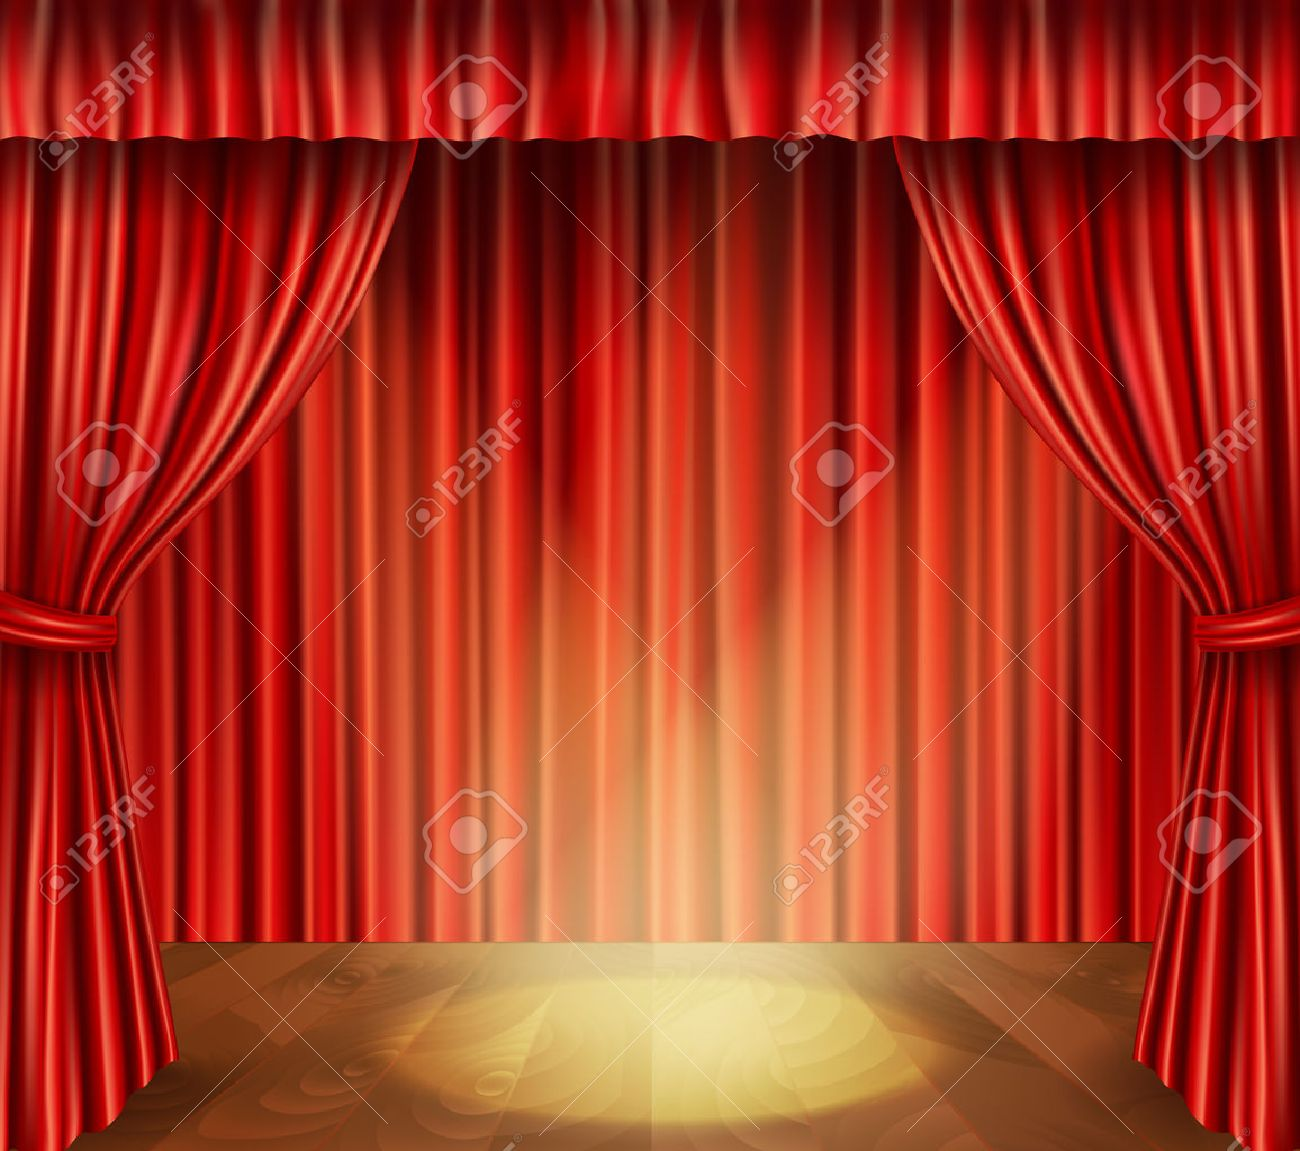 Theater Stage With Wooden Floor Red Velvet Retro Style Curtain And Spotlight Background Vector Illustration Stock